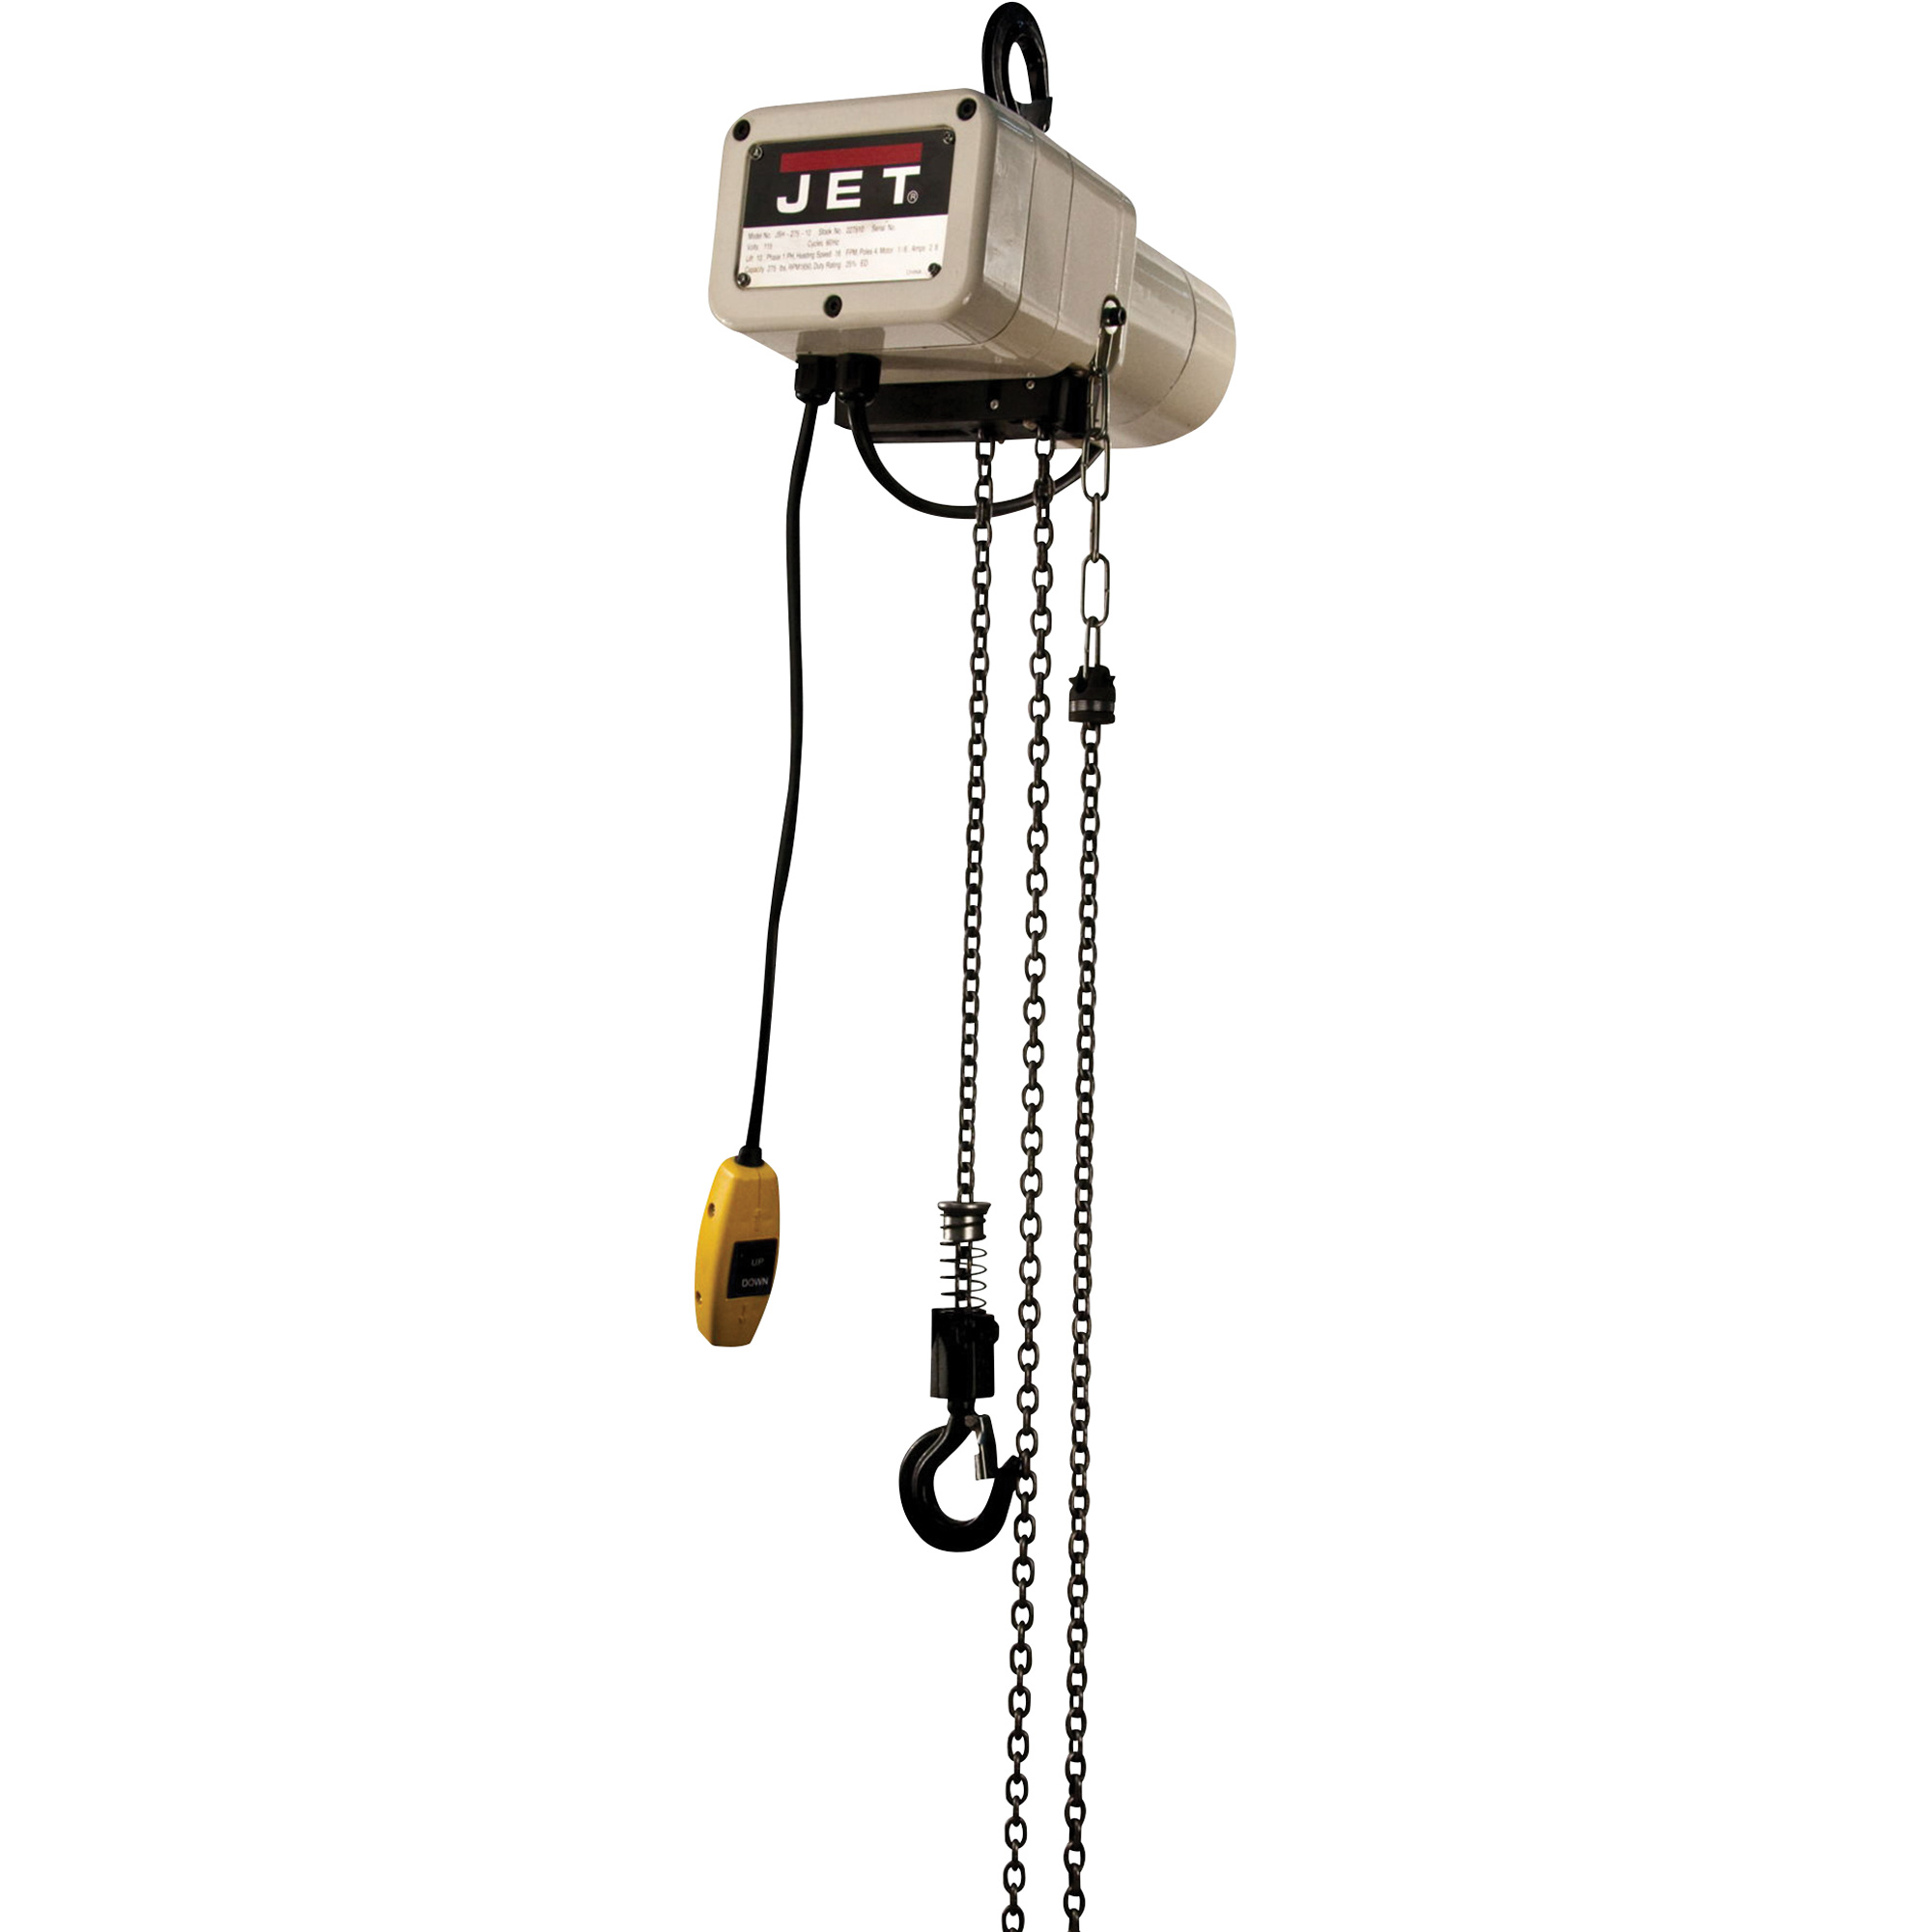 Industrial Rig Lights Ir4: JET JSH Series Electric Chain Hoist